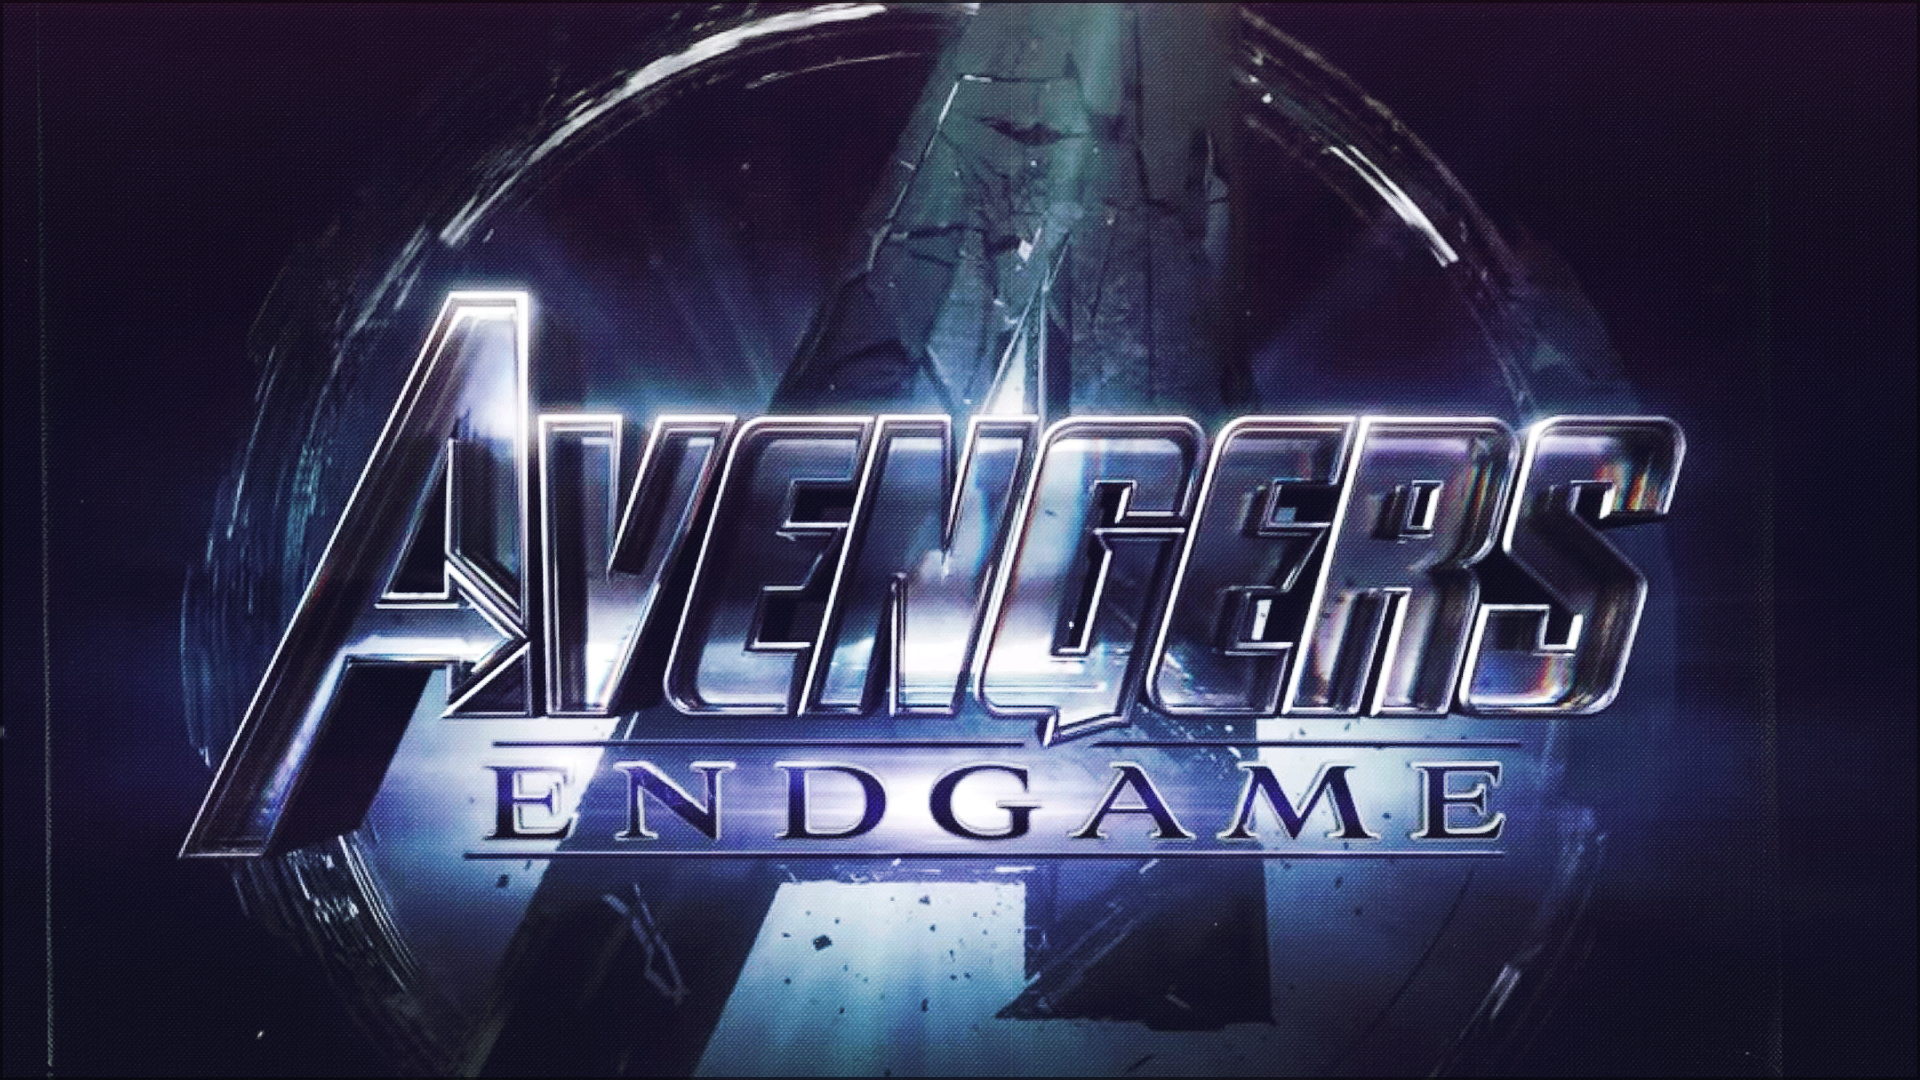 Article / Theory: Why Avengers: Endgame is Not the Biggest Movie of 2019 (A Mathematical Proof) [2019]; Herein, We Present the True Holder of the Title